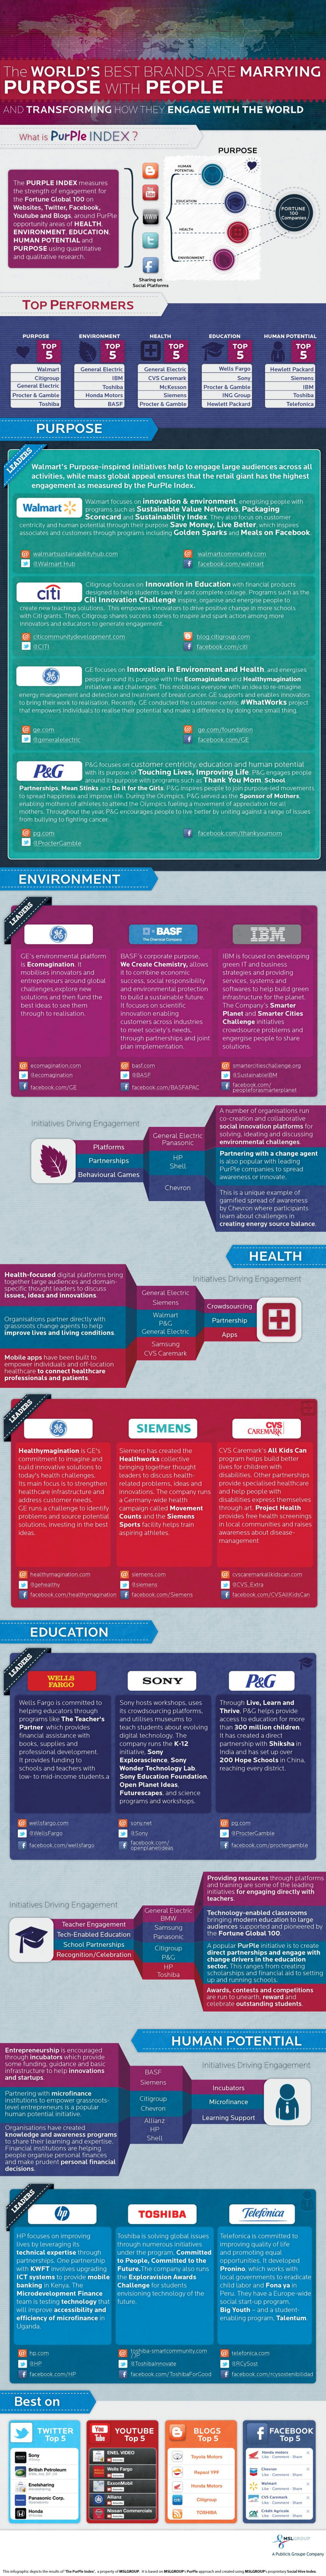 PurPle Index by MSLGROUP Infographic